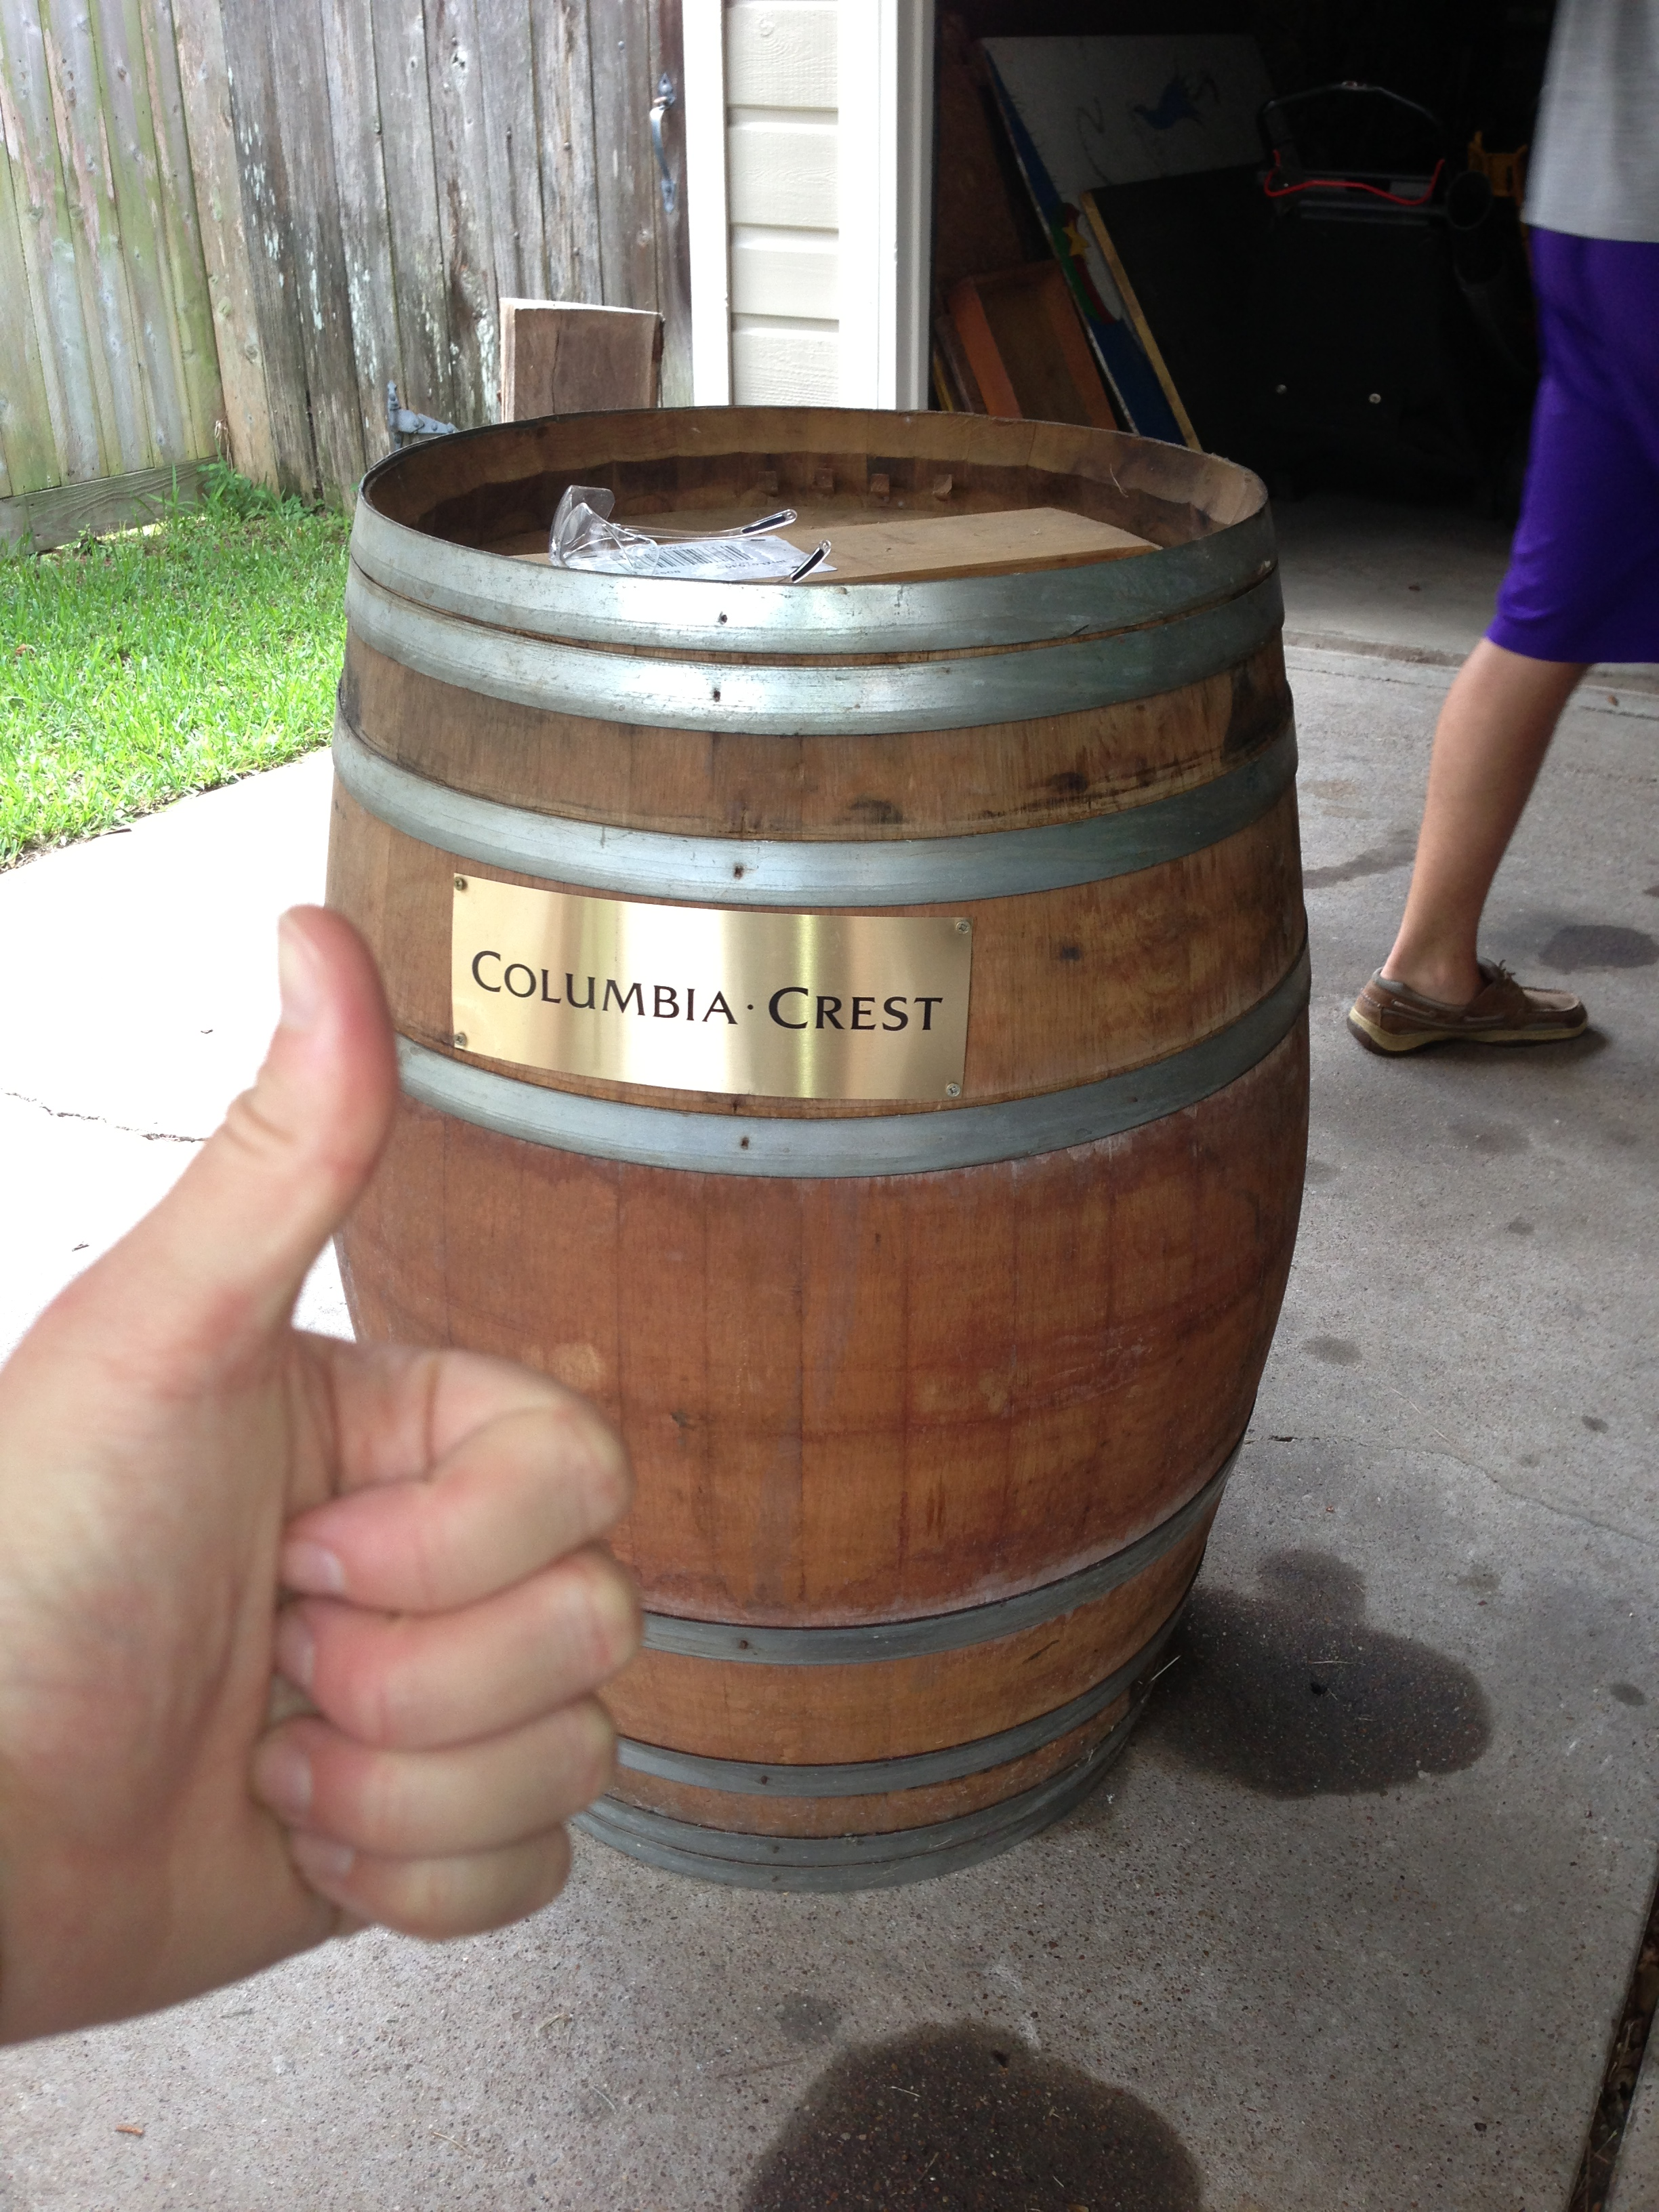 The barrel intact and ready for modification.